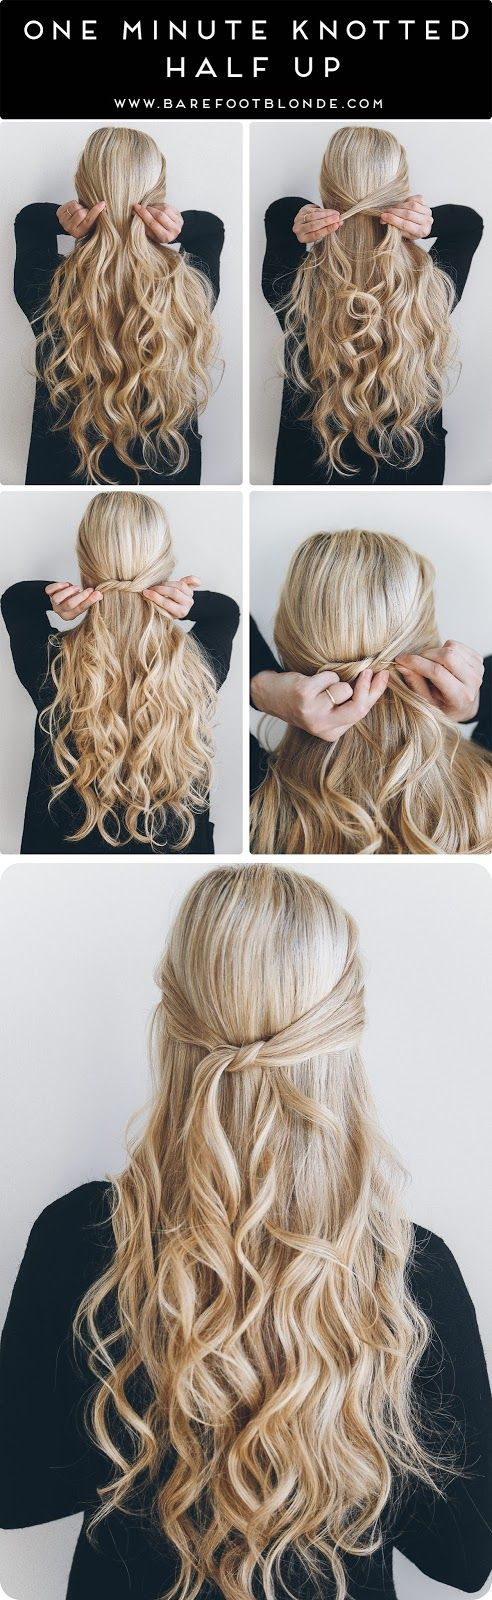 The art of half up for long hair fitted for every occasion hair